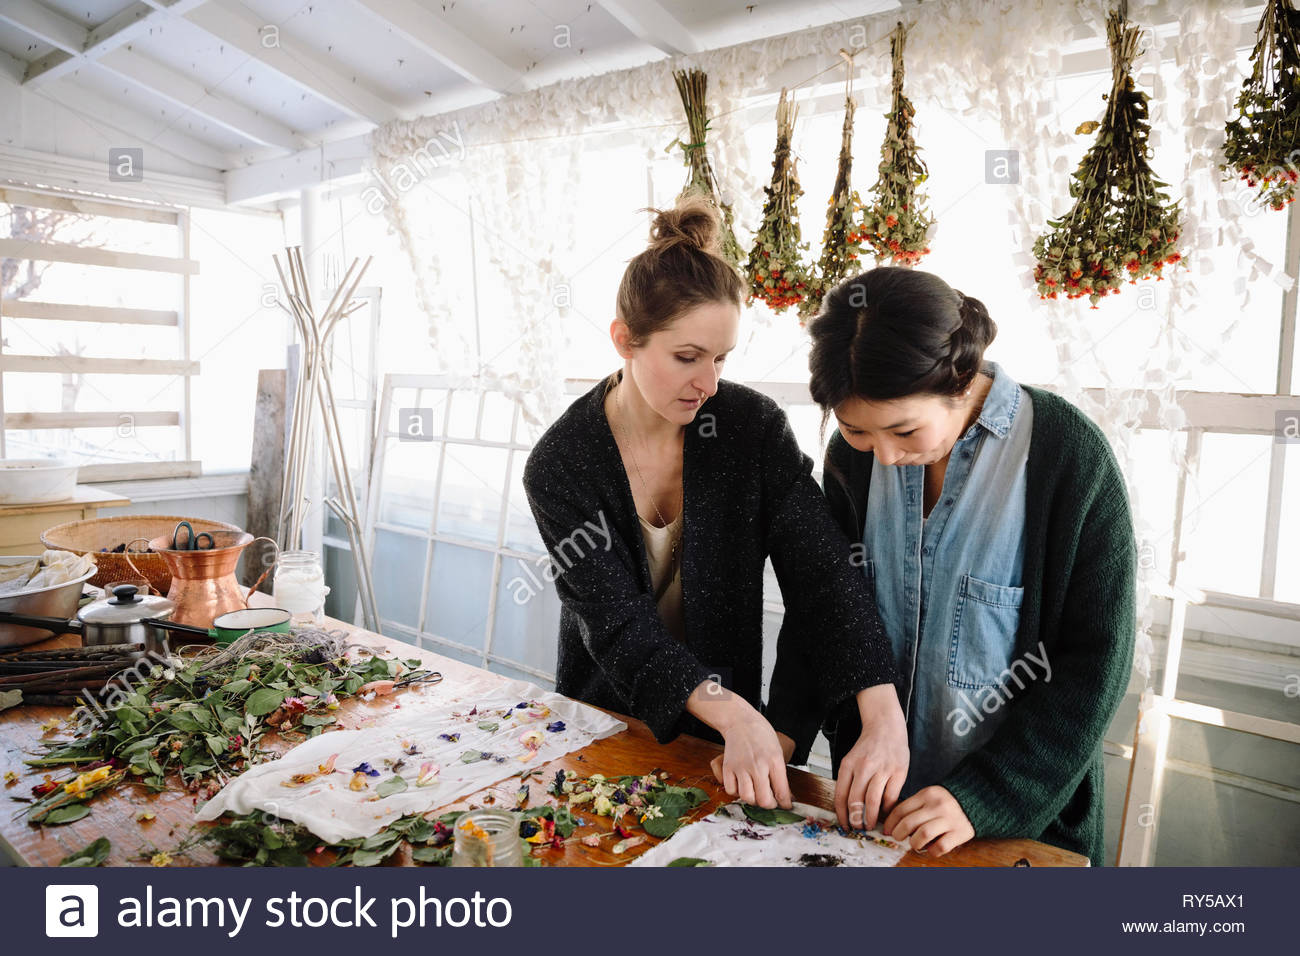 Female artists drying flowers for paper making - Stock Image